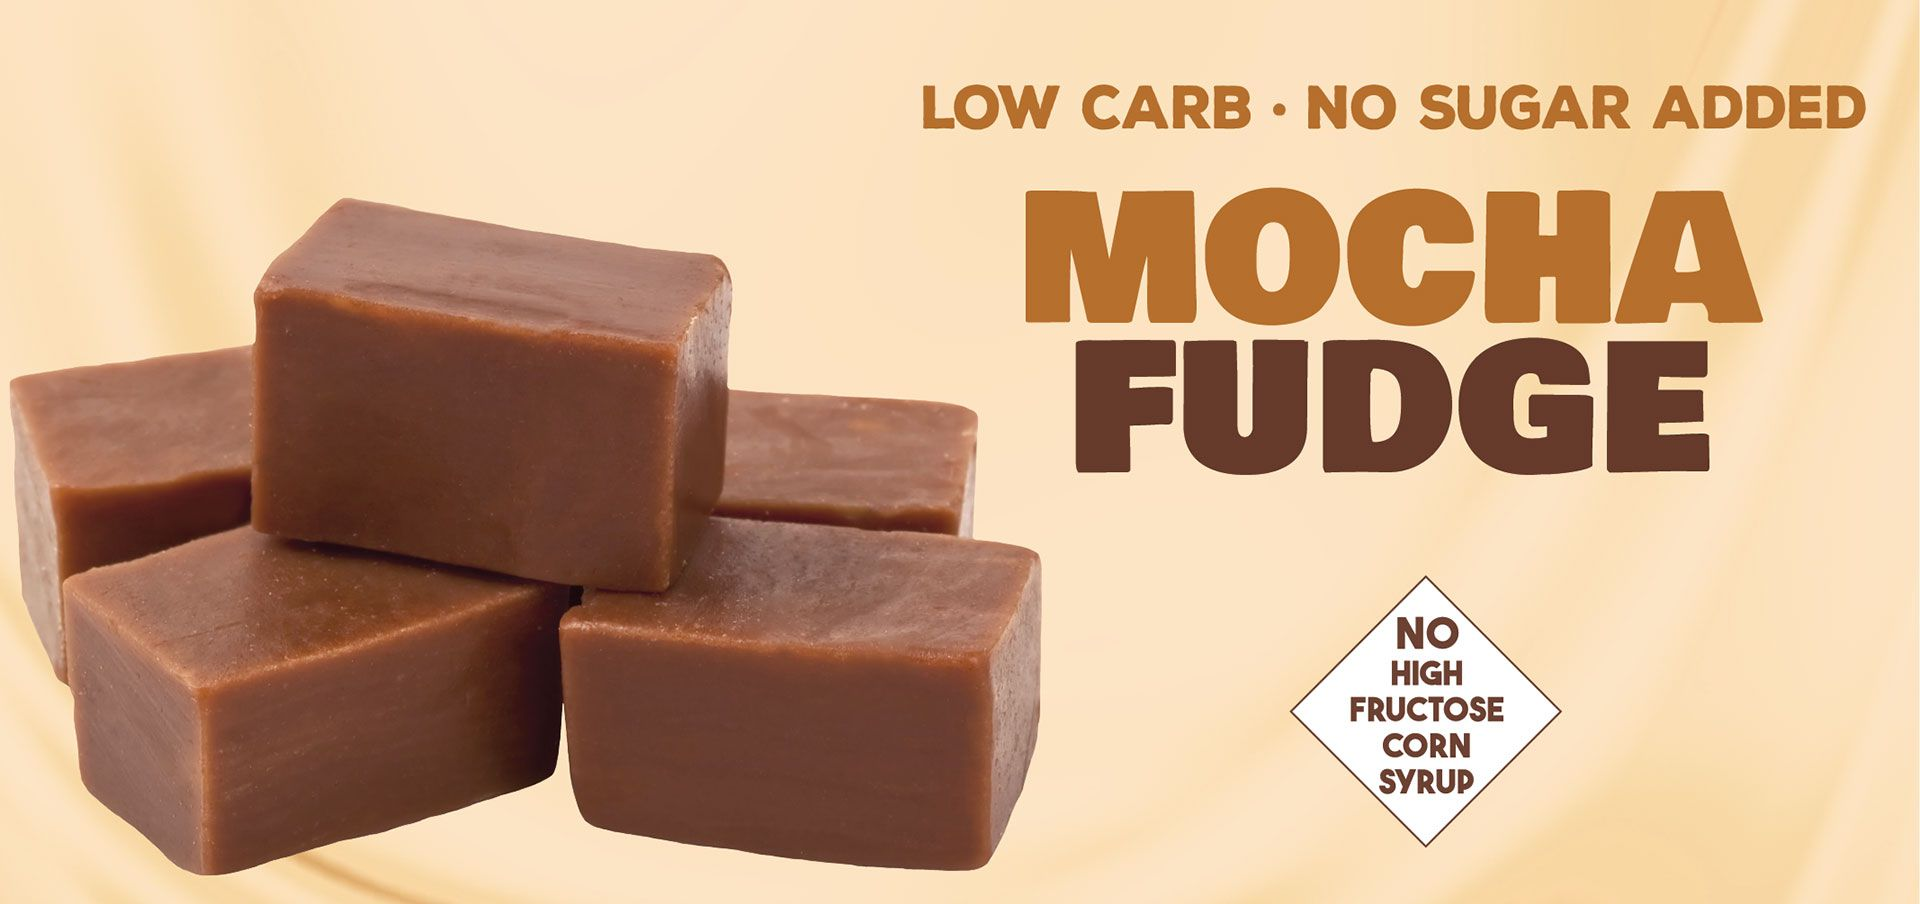 mocha fudge label image